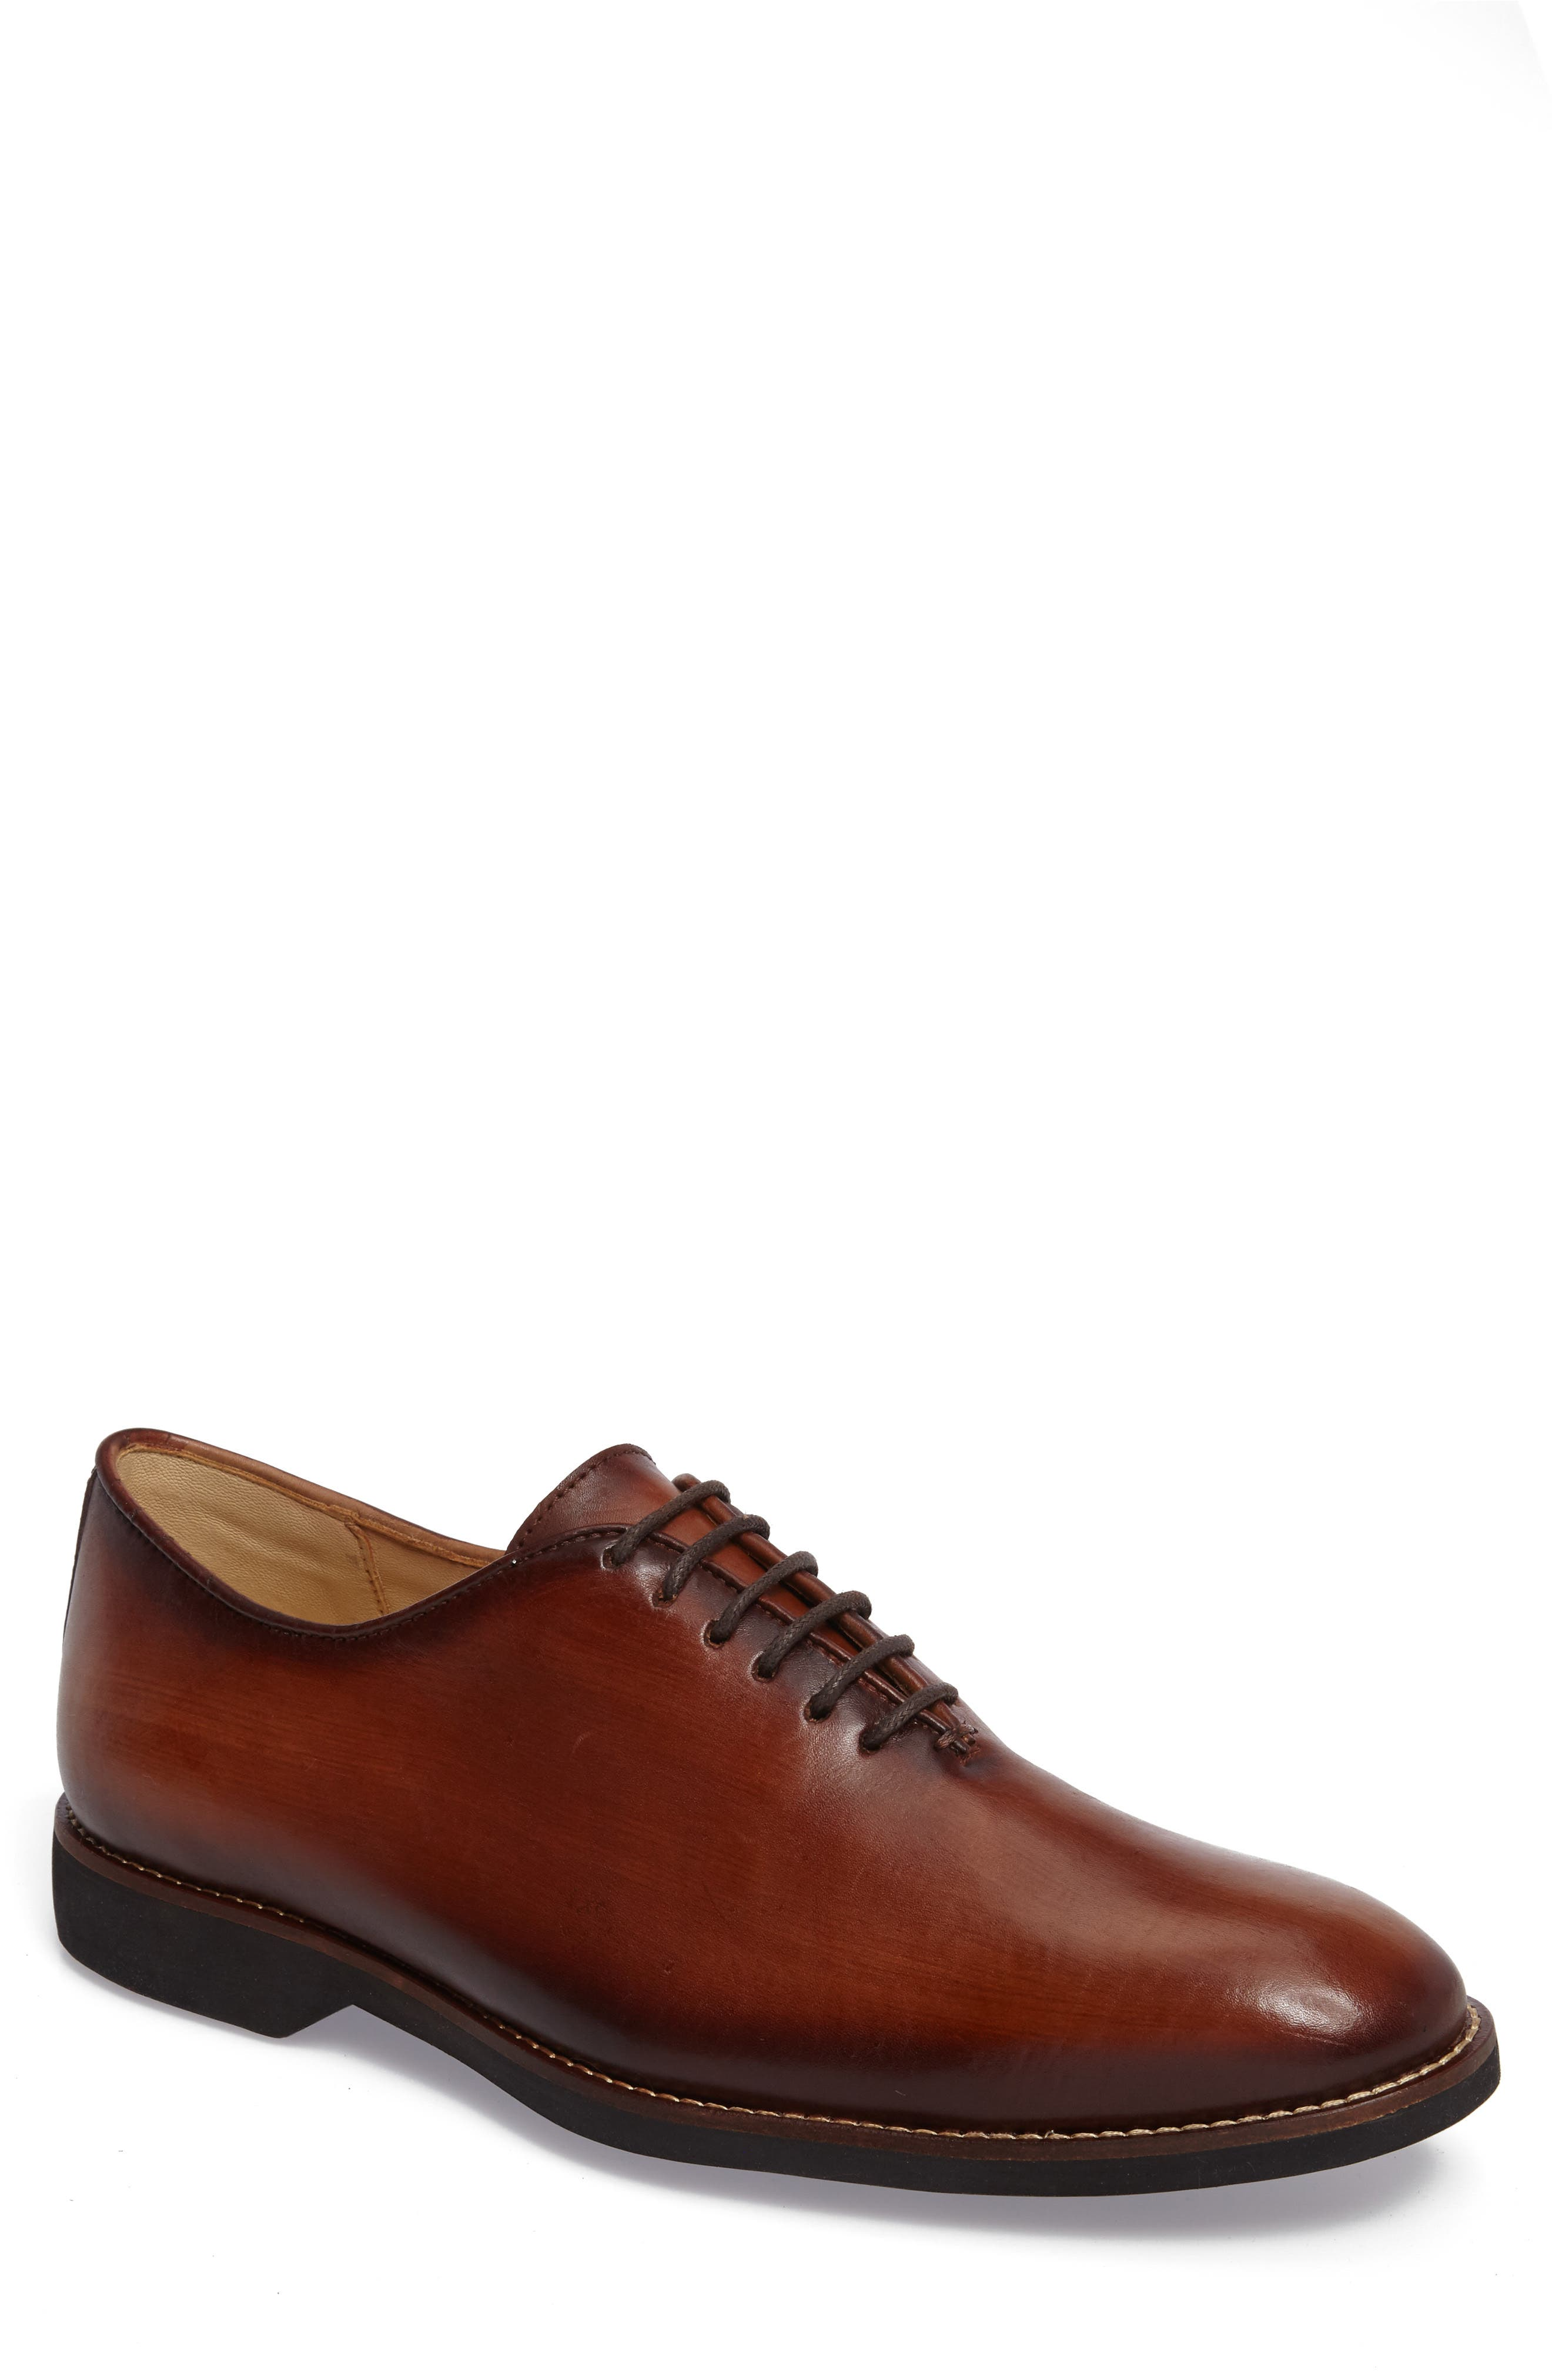 Anatomic & Co. Sao Paulo Wholecut Oxford (Men)